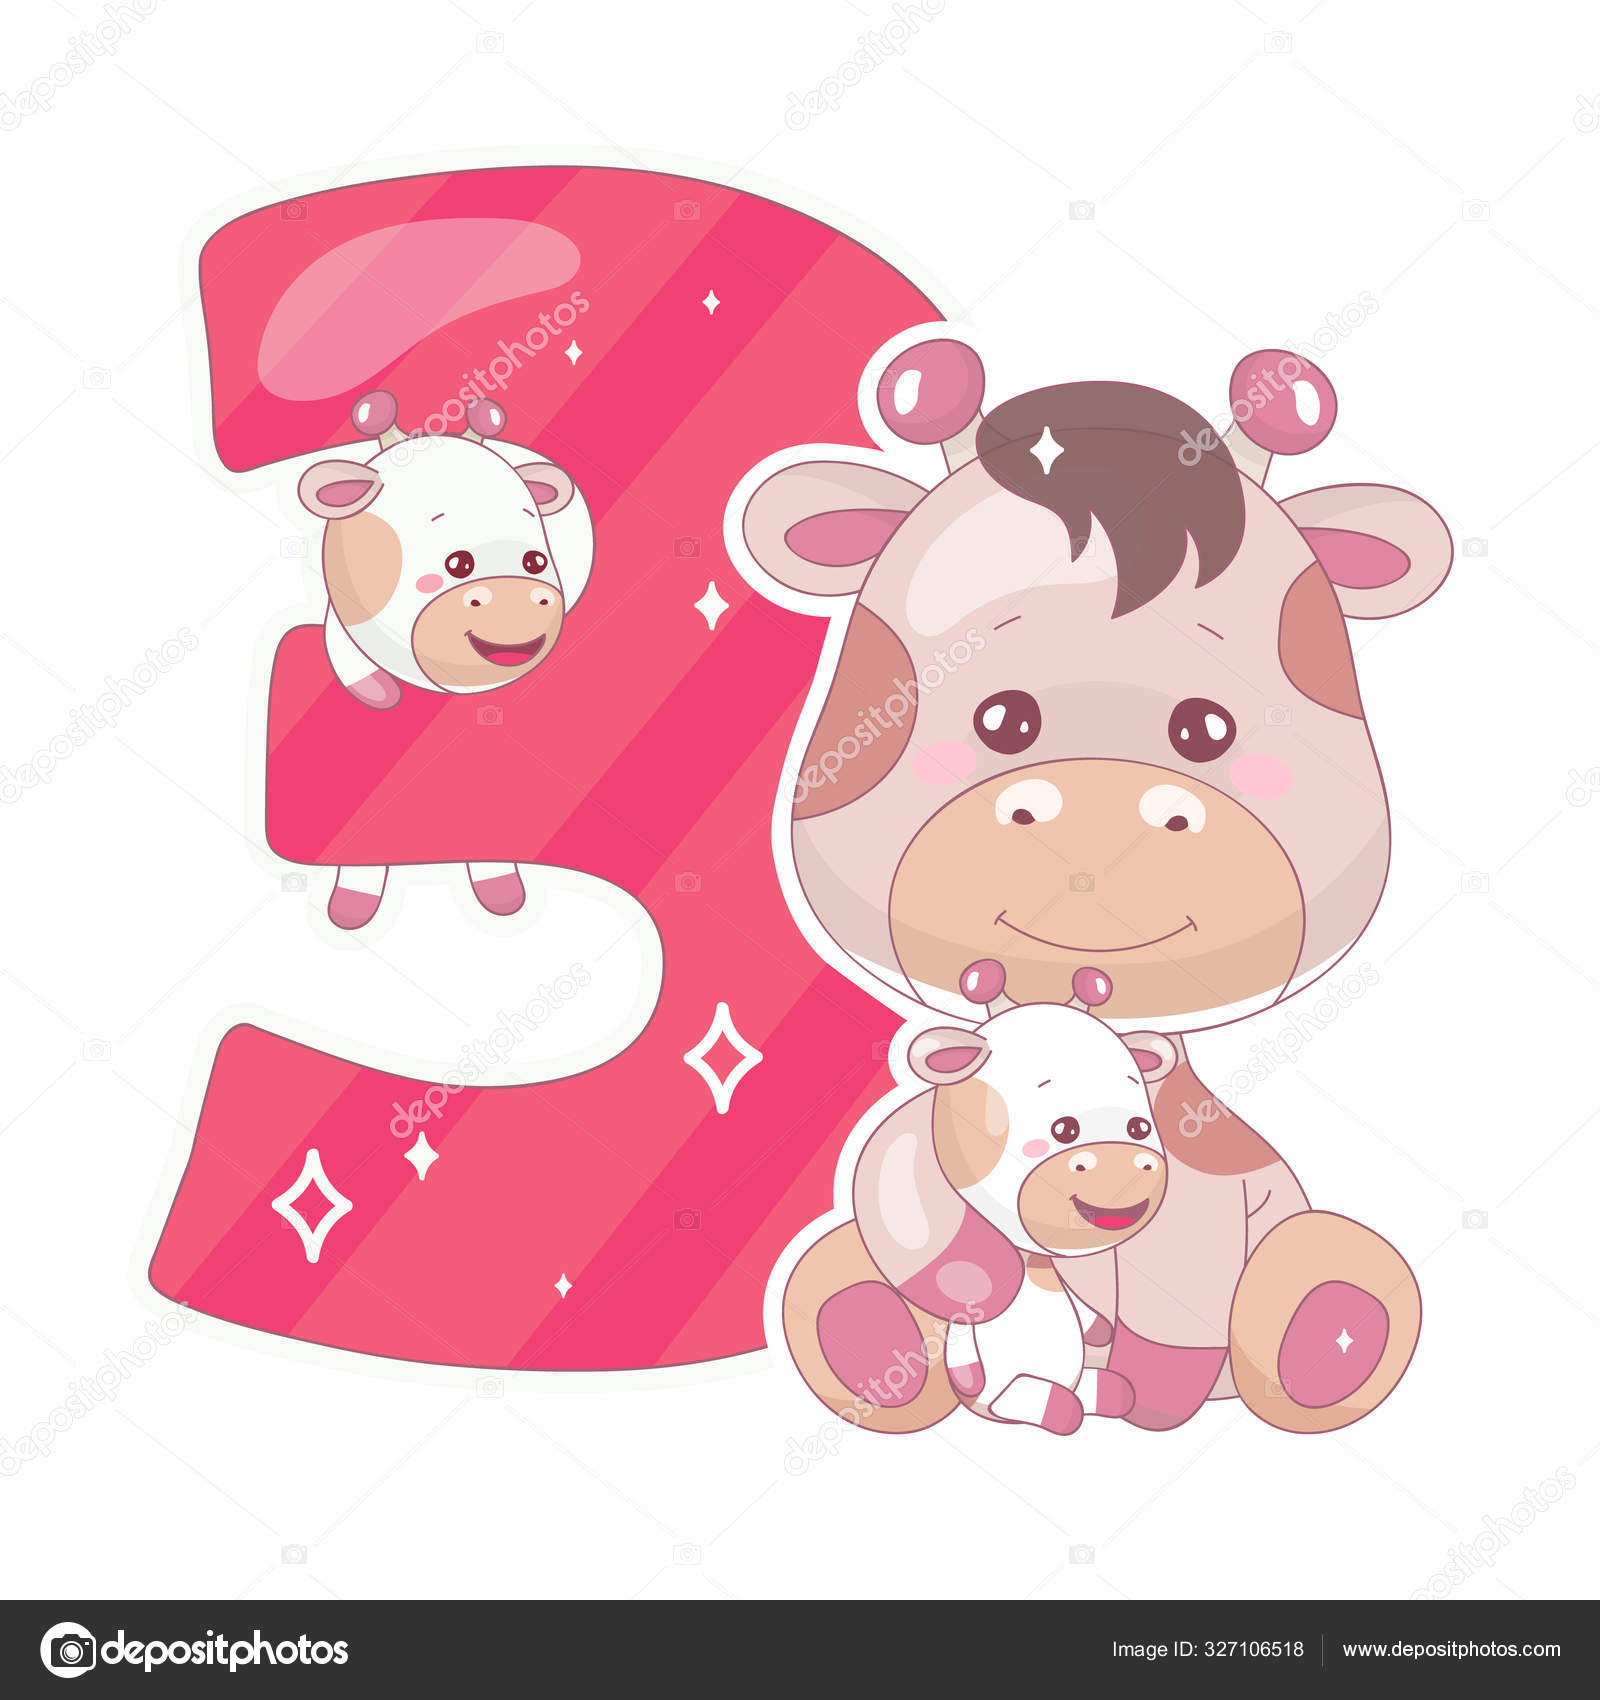 Cute Three Number With Baby Giraffe Cartoon Illustration